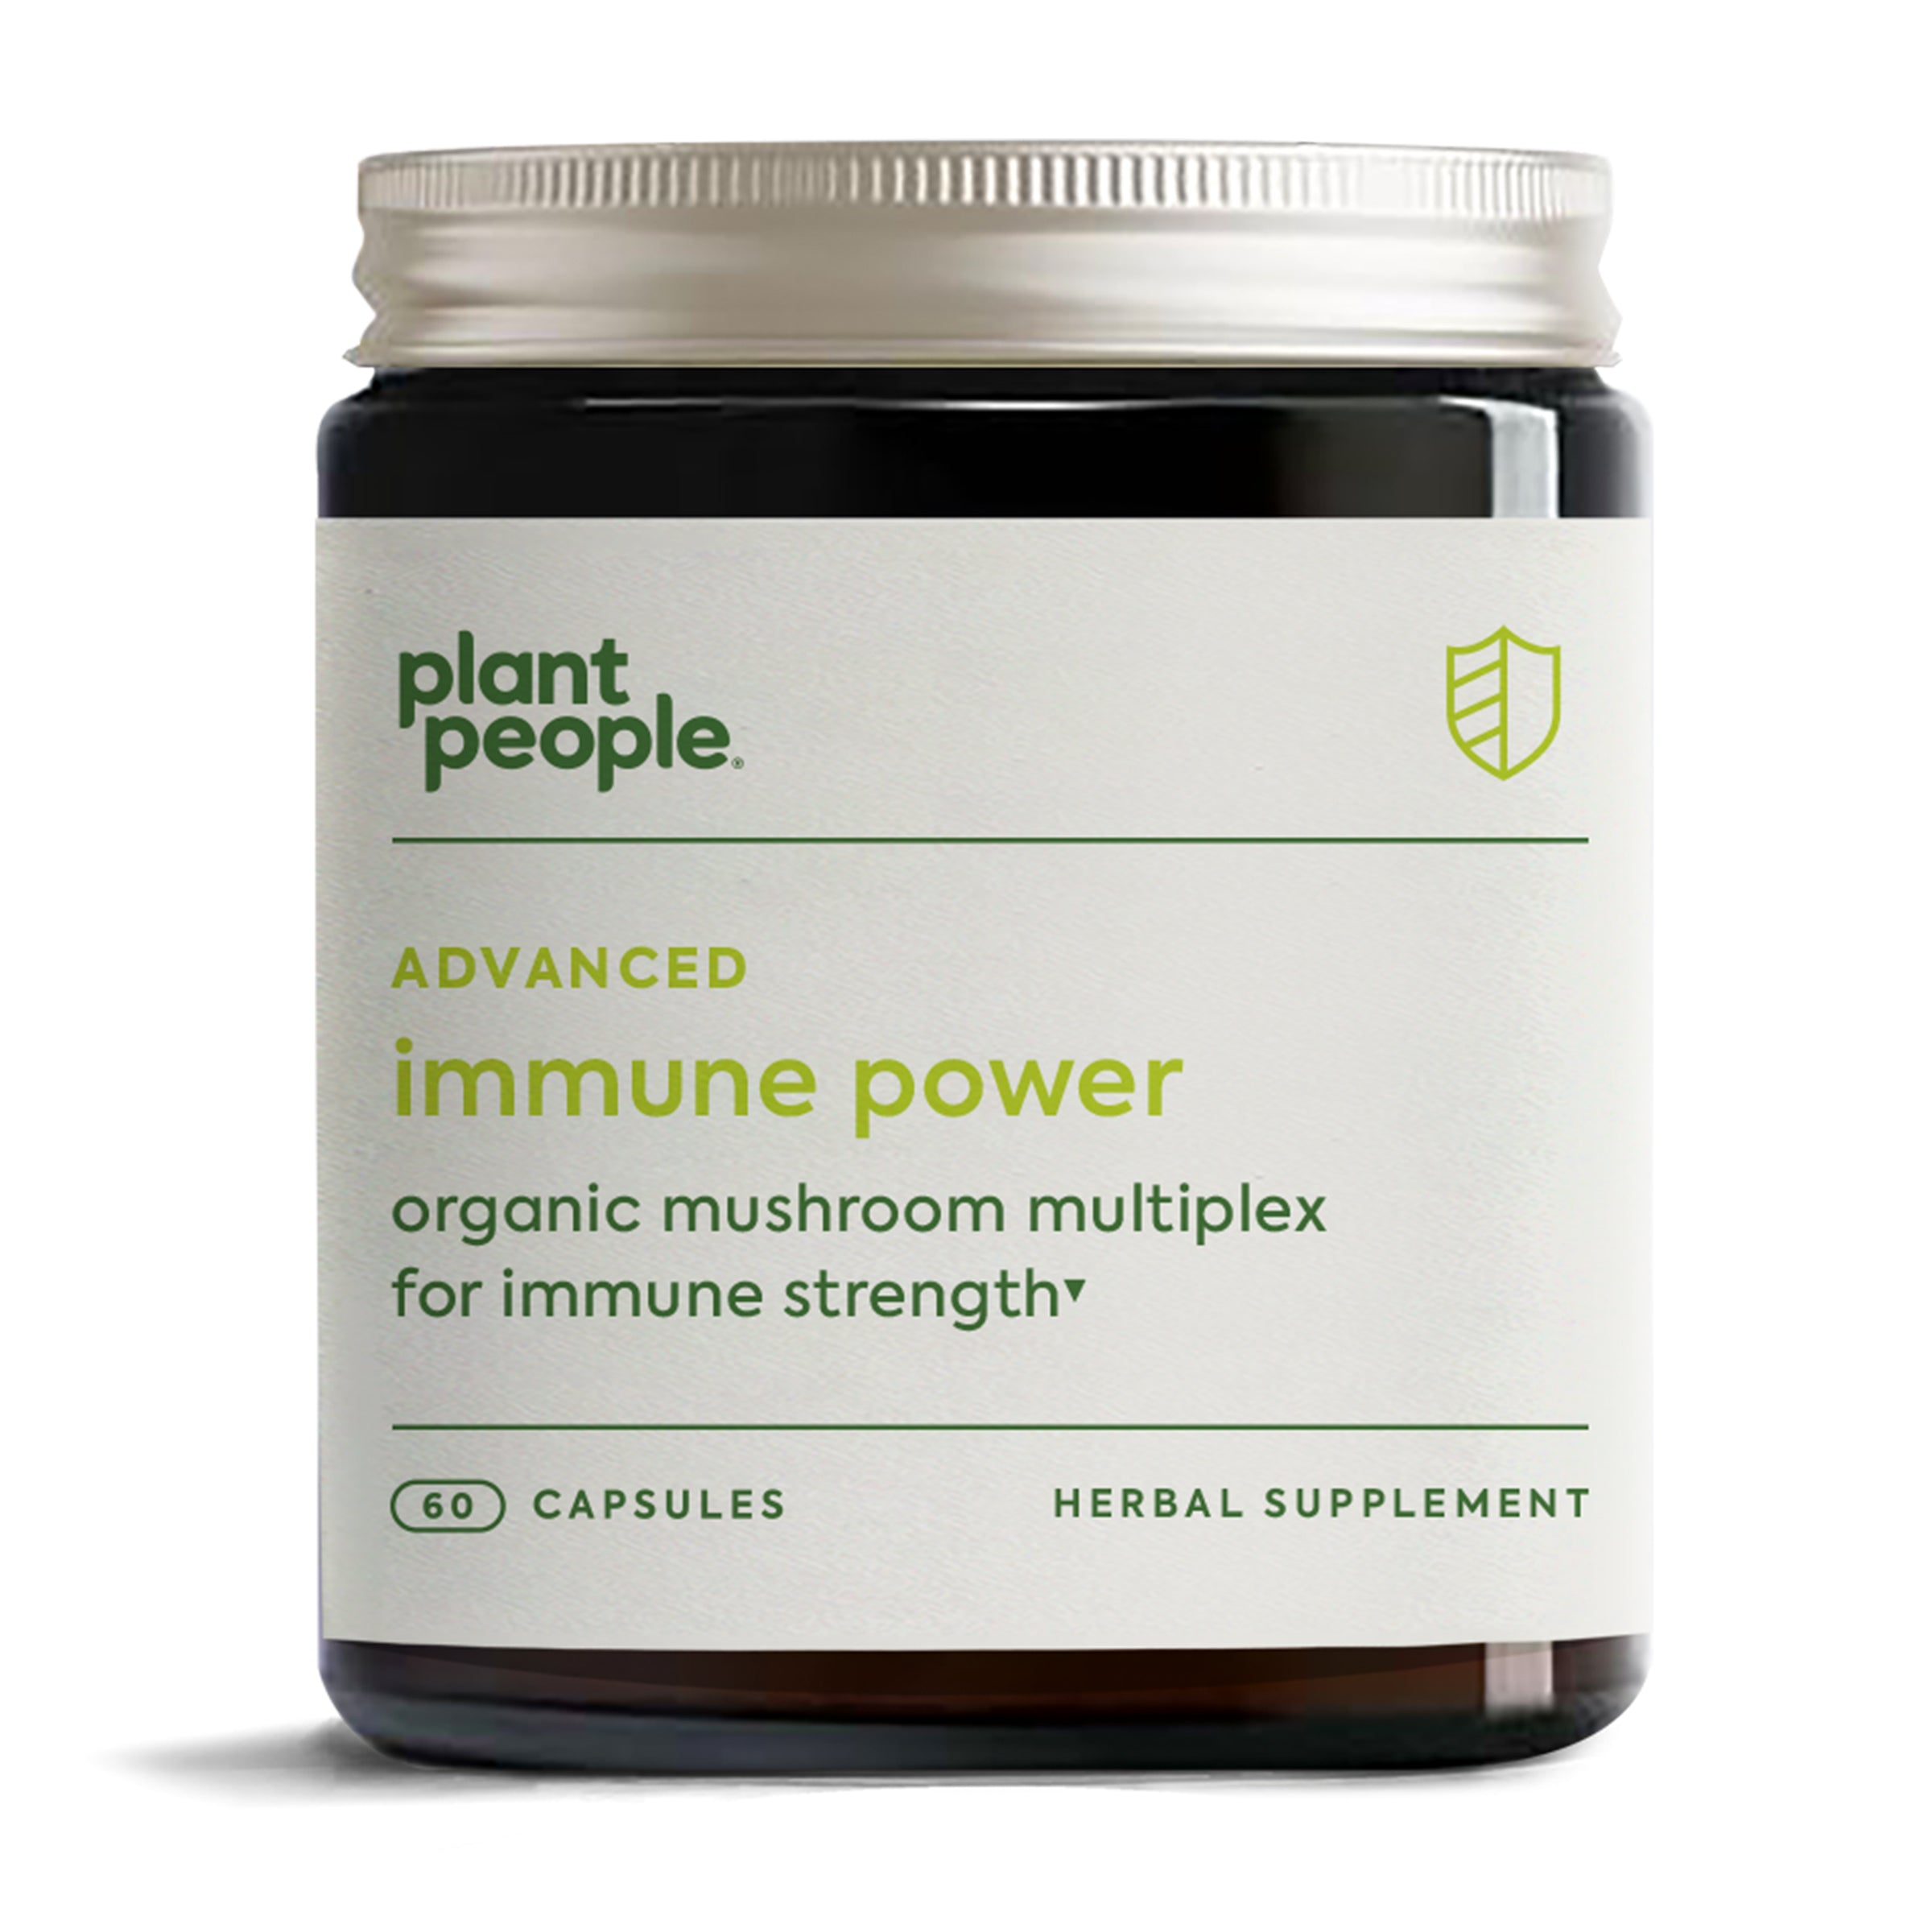 Plant People Advanced Immune Power Herbal Capsules